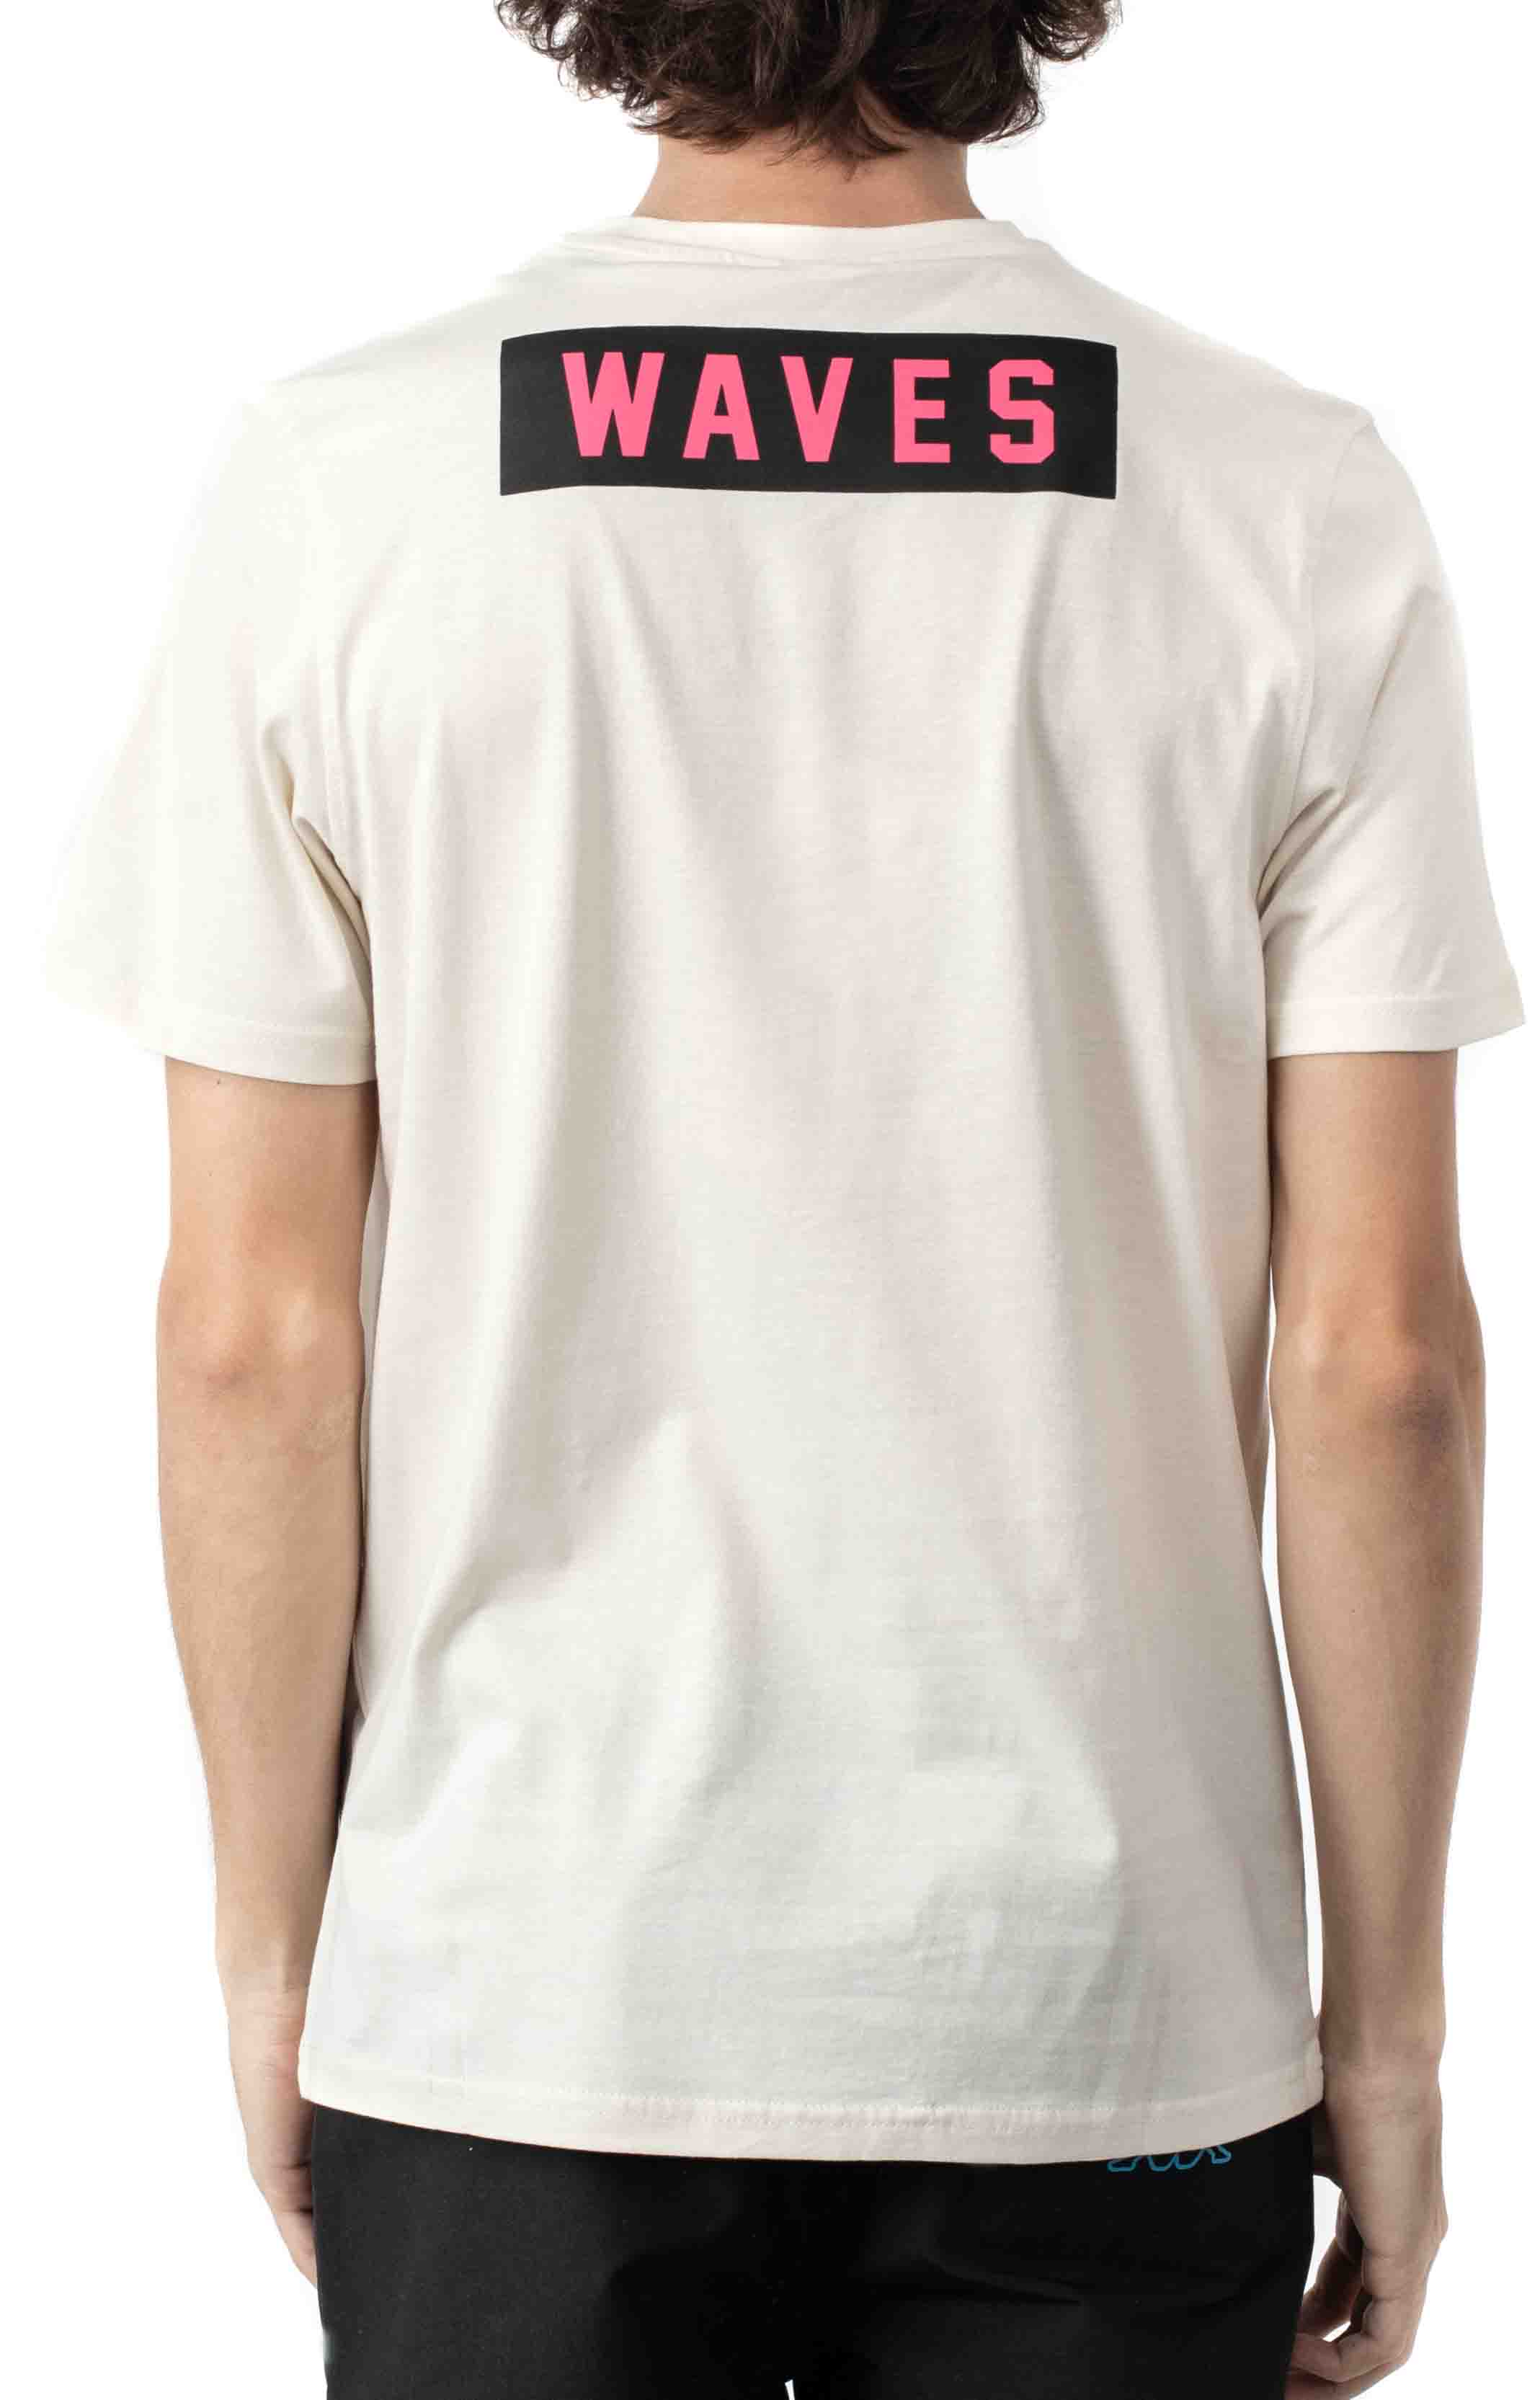 Authentic Accompong T-Shirt - White Cream  3